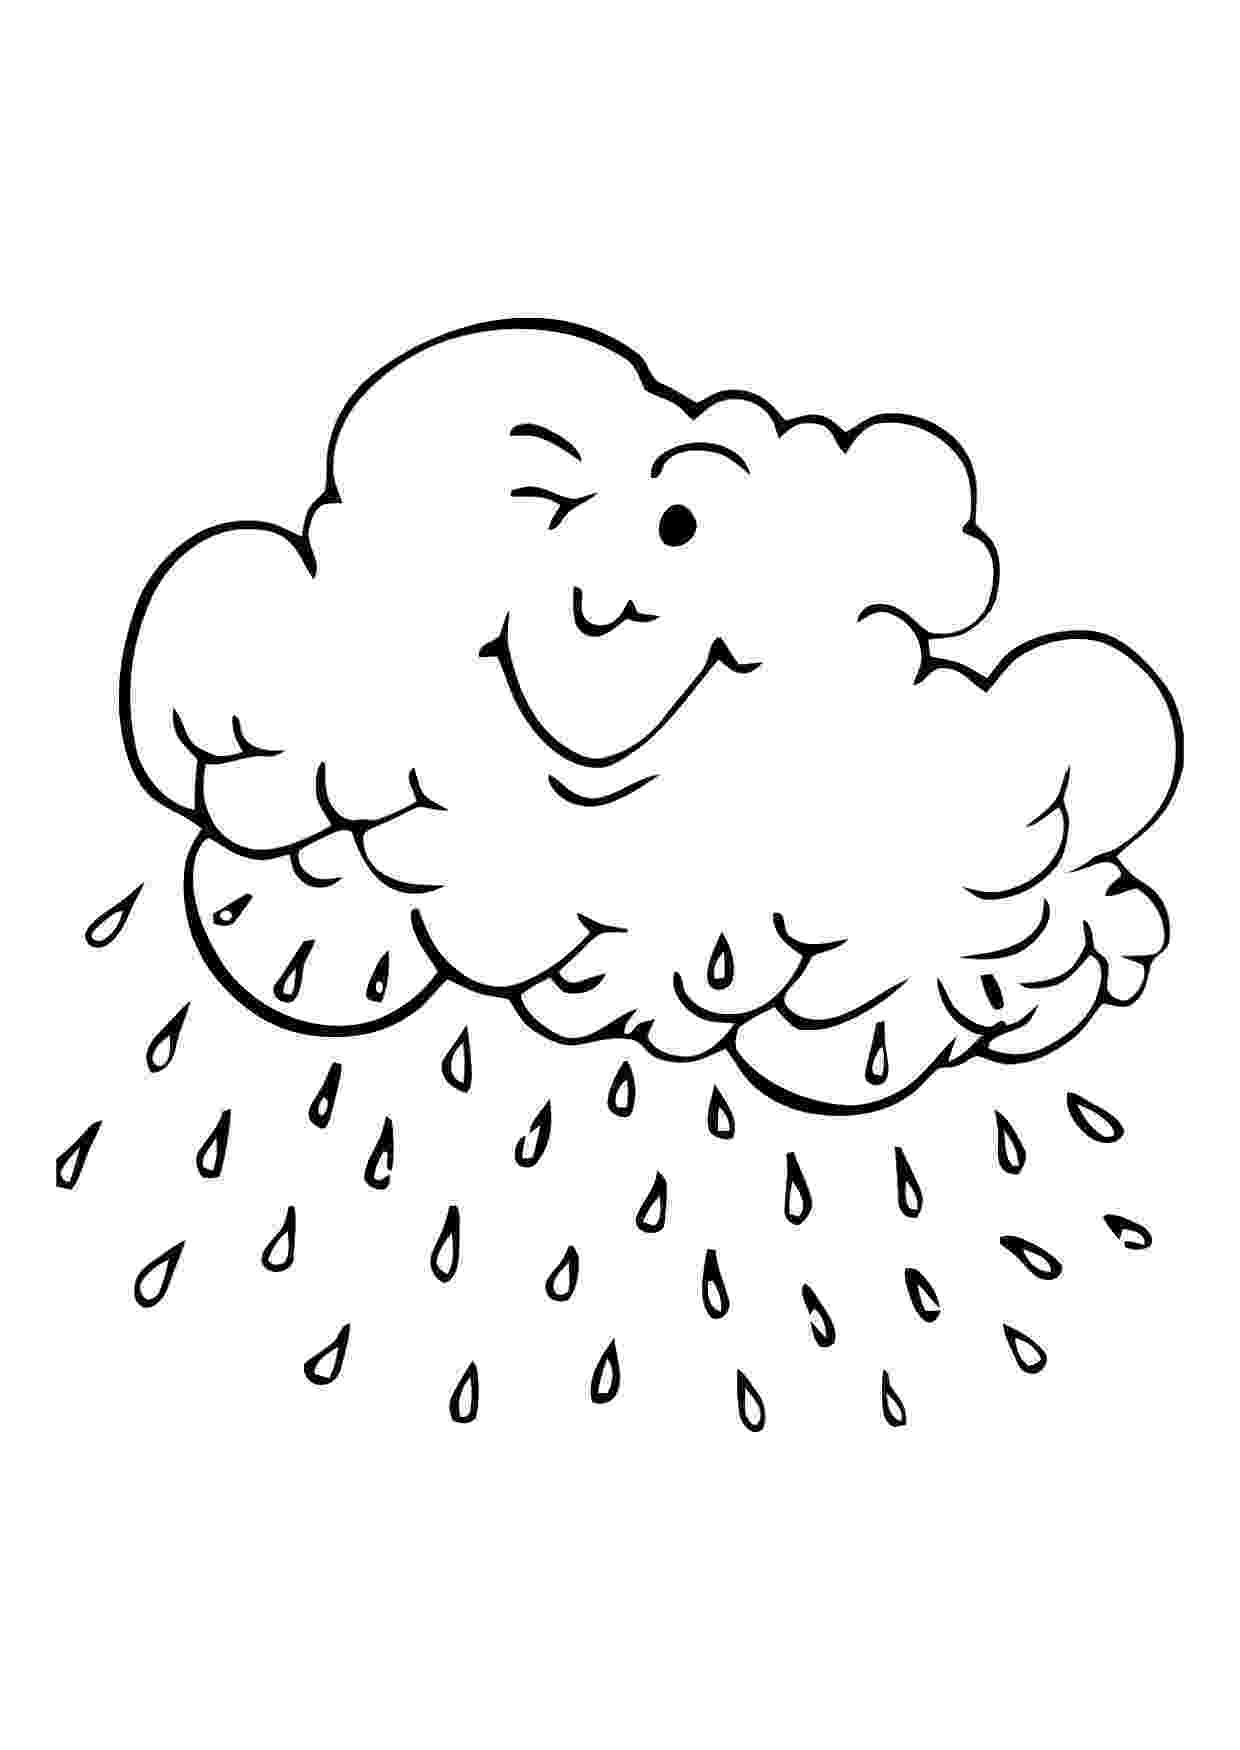 rain coloring page rain coloring pages best coloring pages for kids rain page coloring